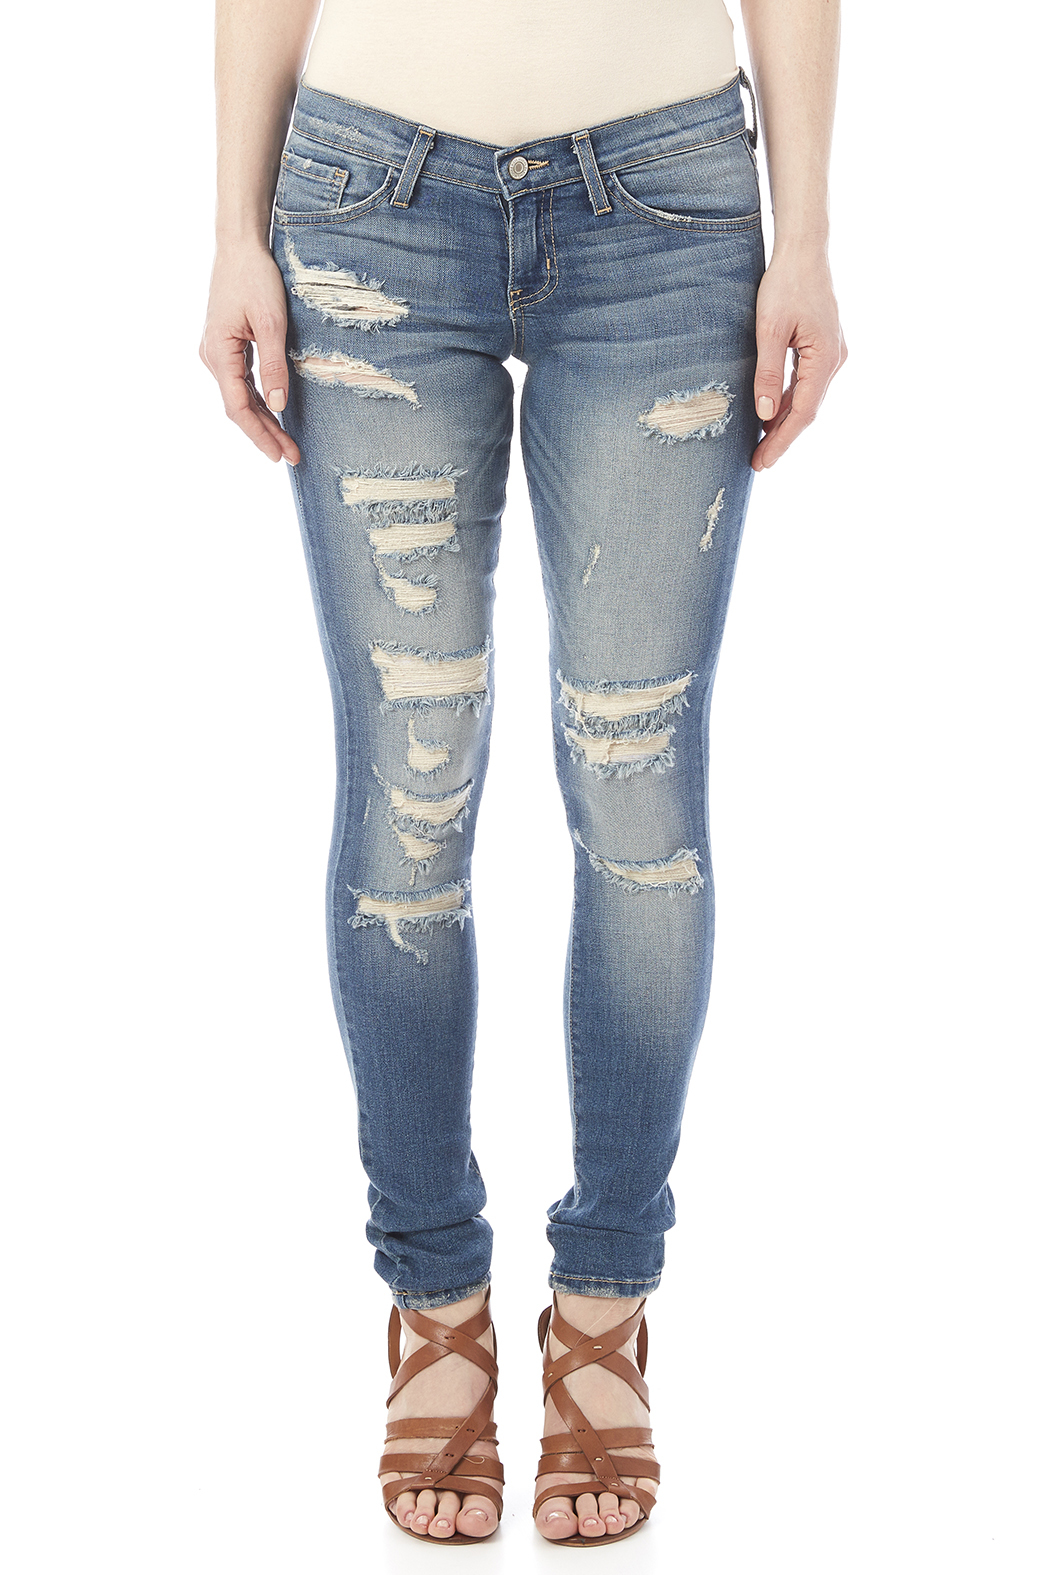 Flying Monkey Distressed Skinny Jean - Side Cropped Image